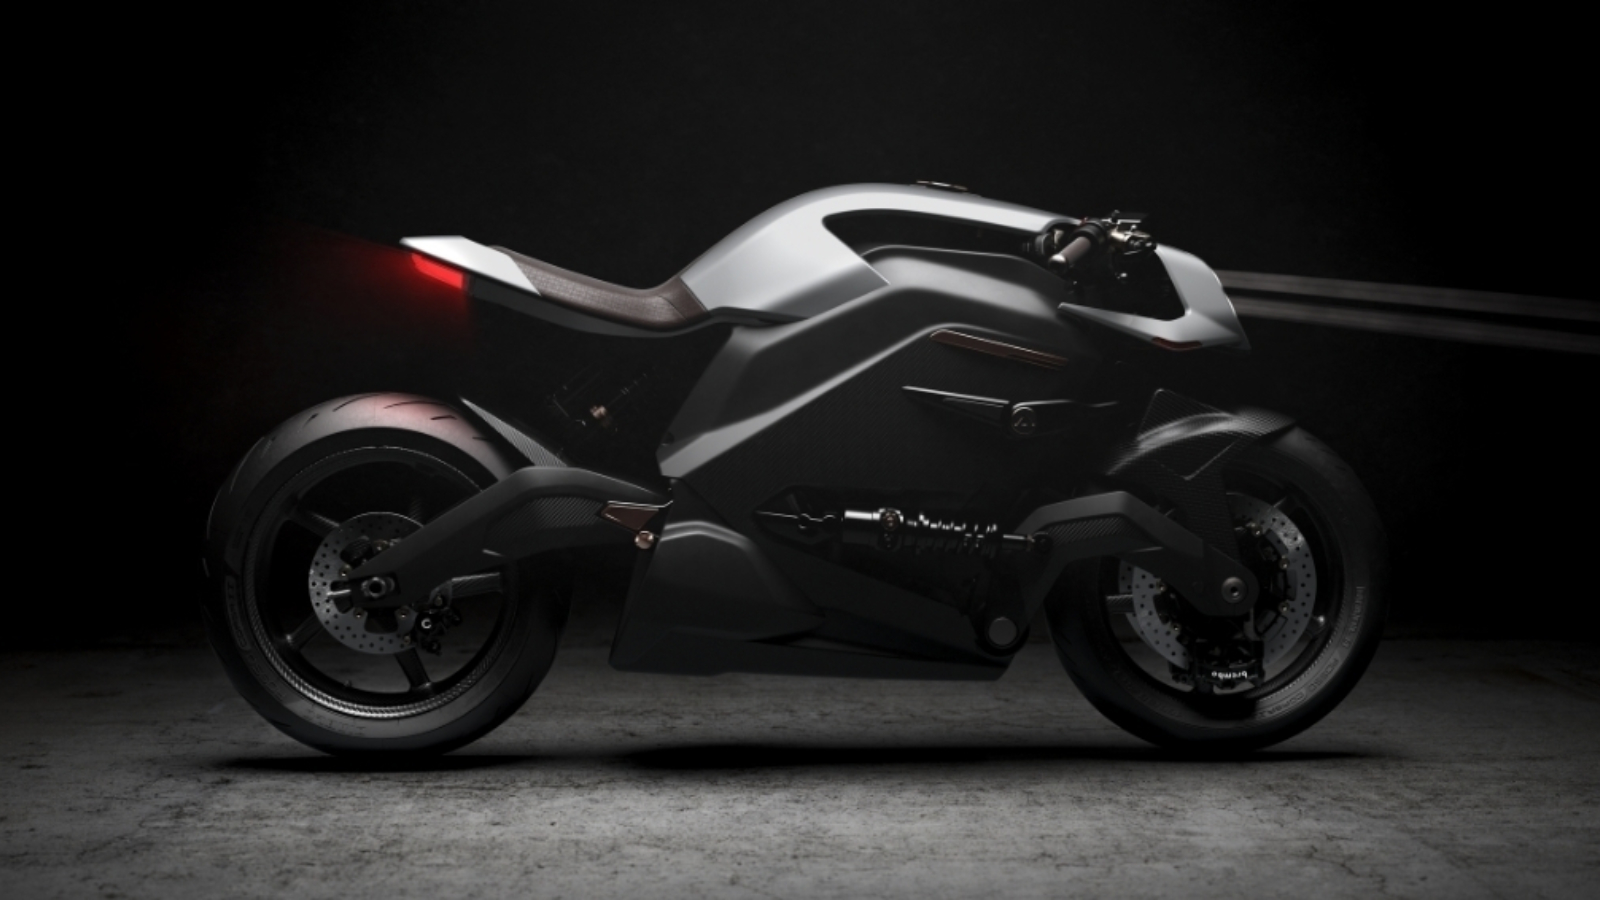 Arc Vector Motorcycle: $117k for The Most Advanced 100% Electric Bike On The Planet